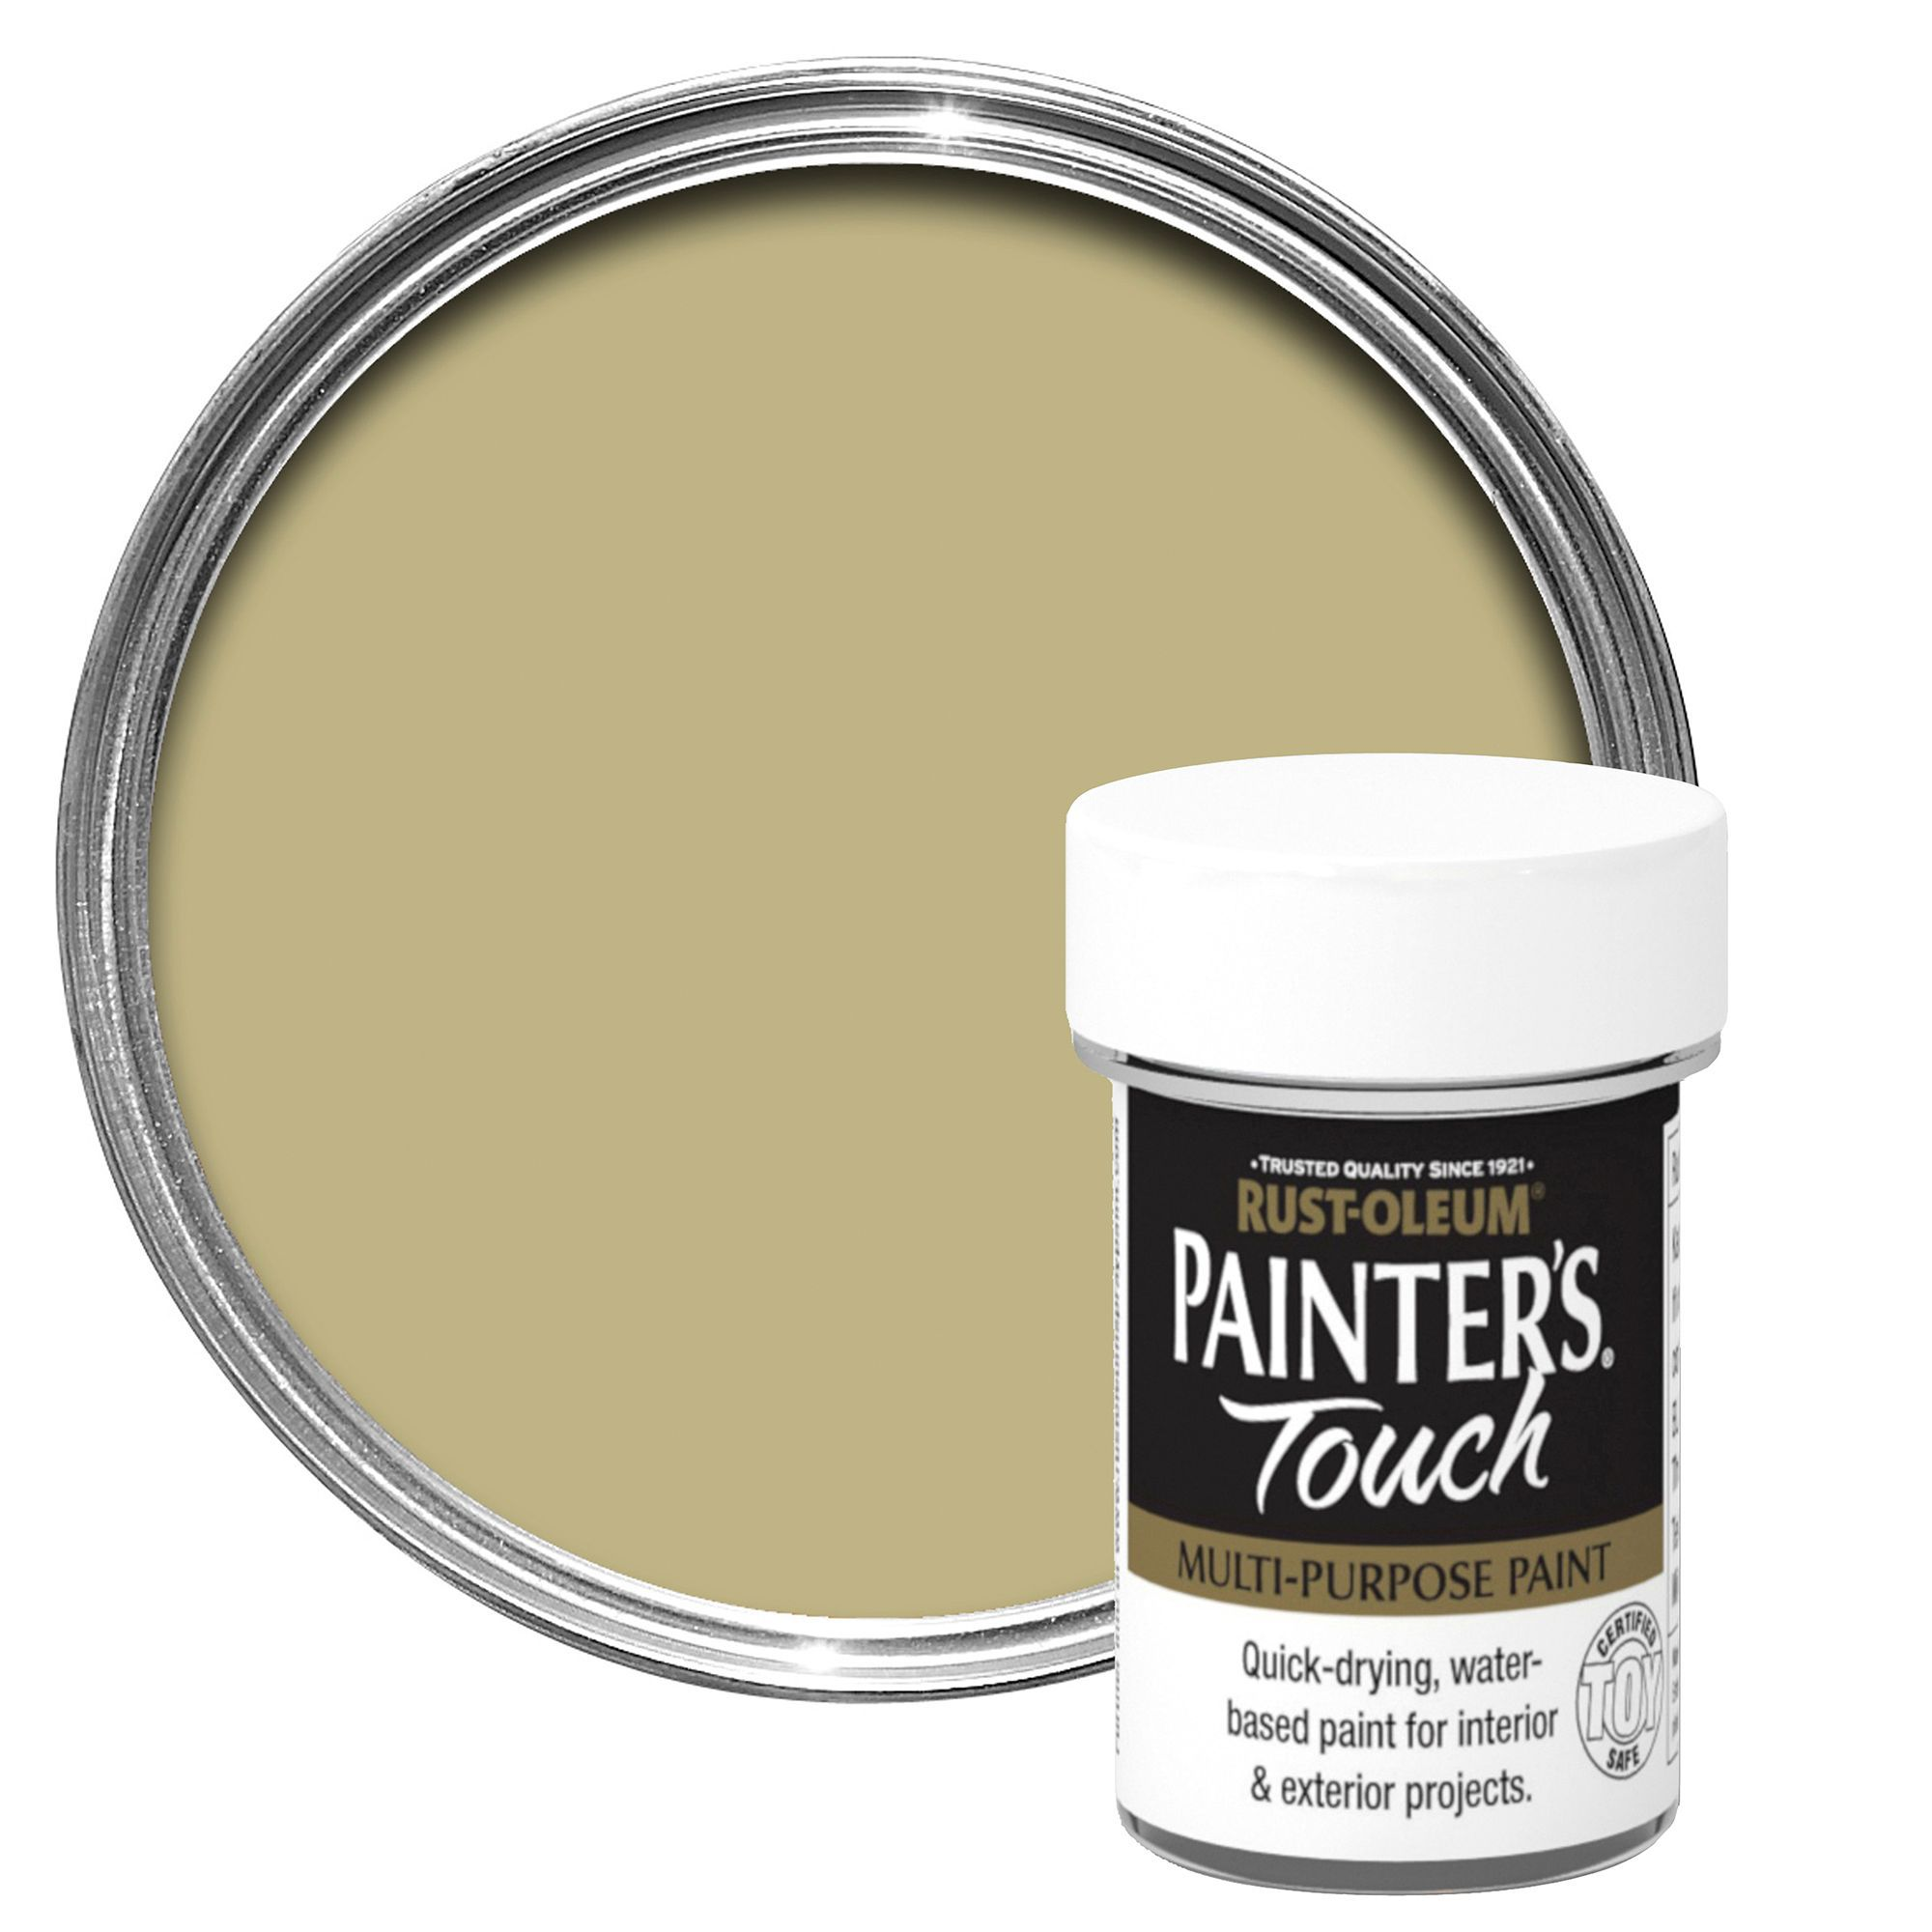 Rust Oleum Painter 39 S Touch Interior Exterior Gold Metallic Multipurpose Paint 20ml